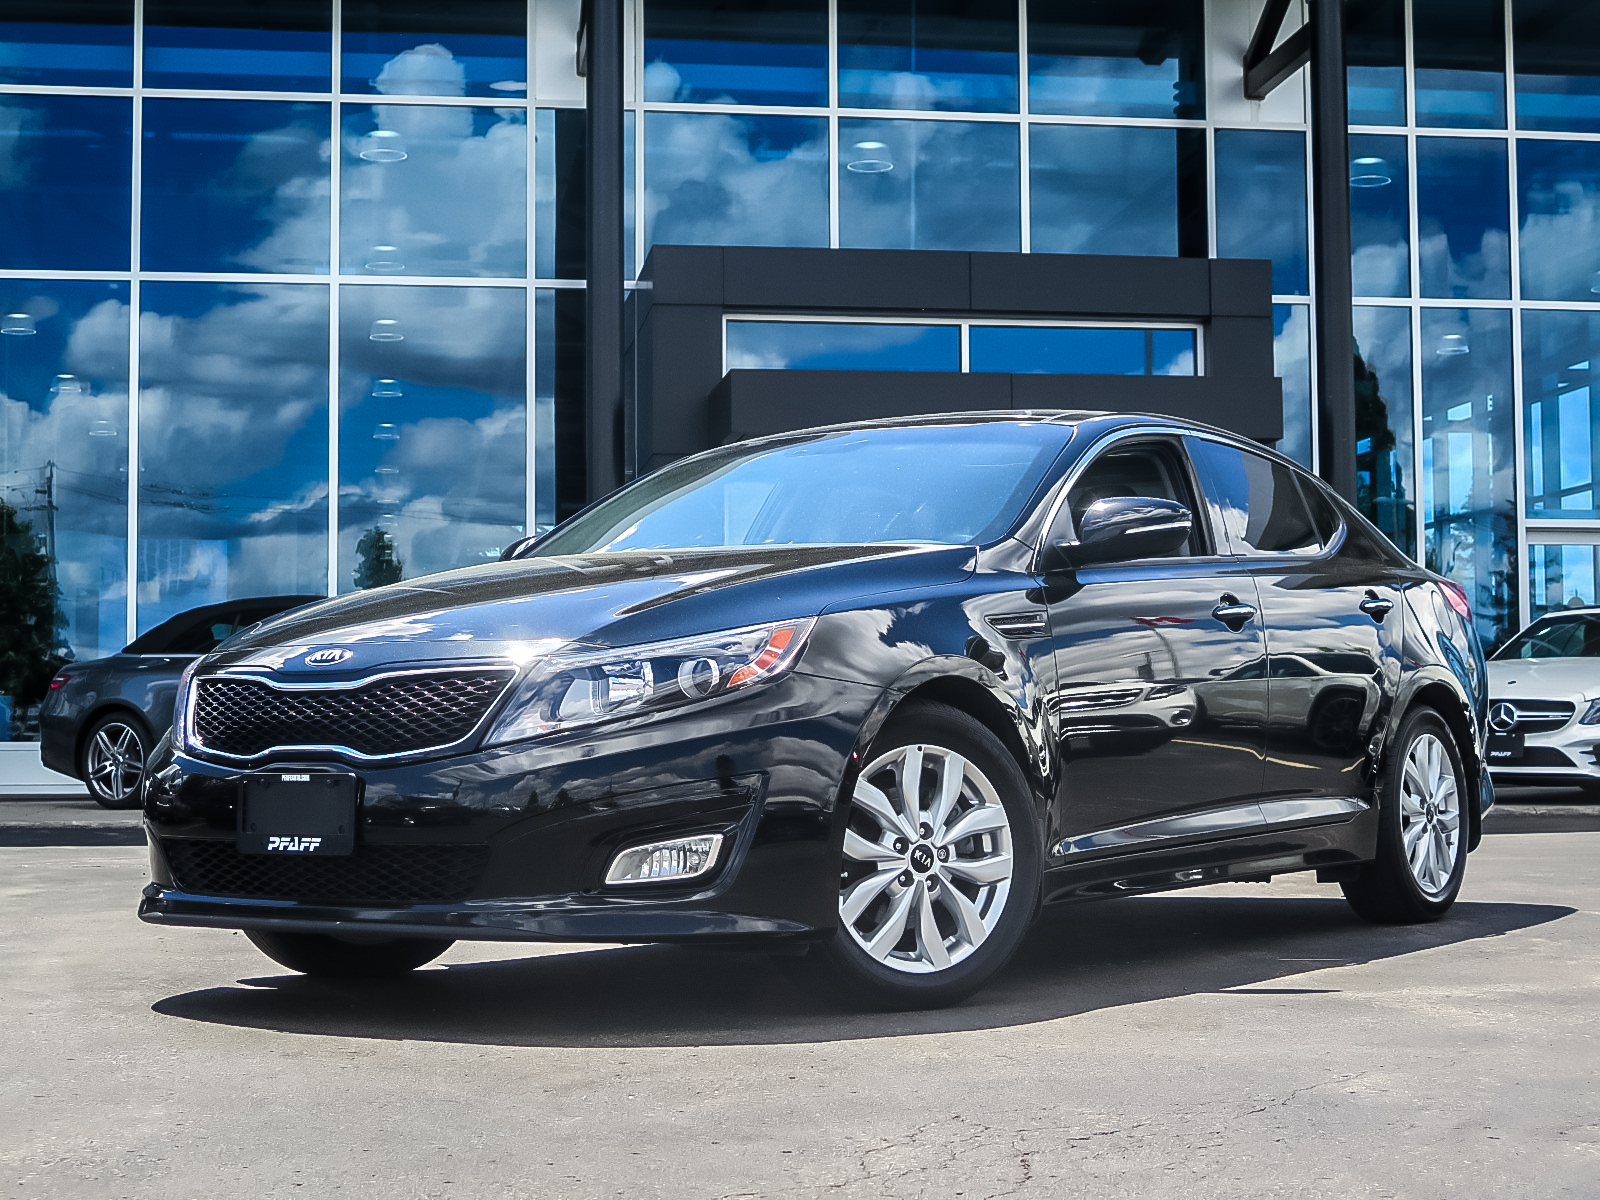 Pre-Owned 2015 Kia Optima EX at Sunroof